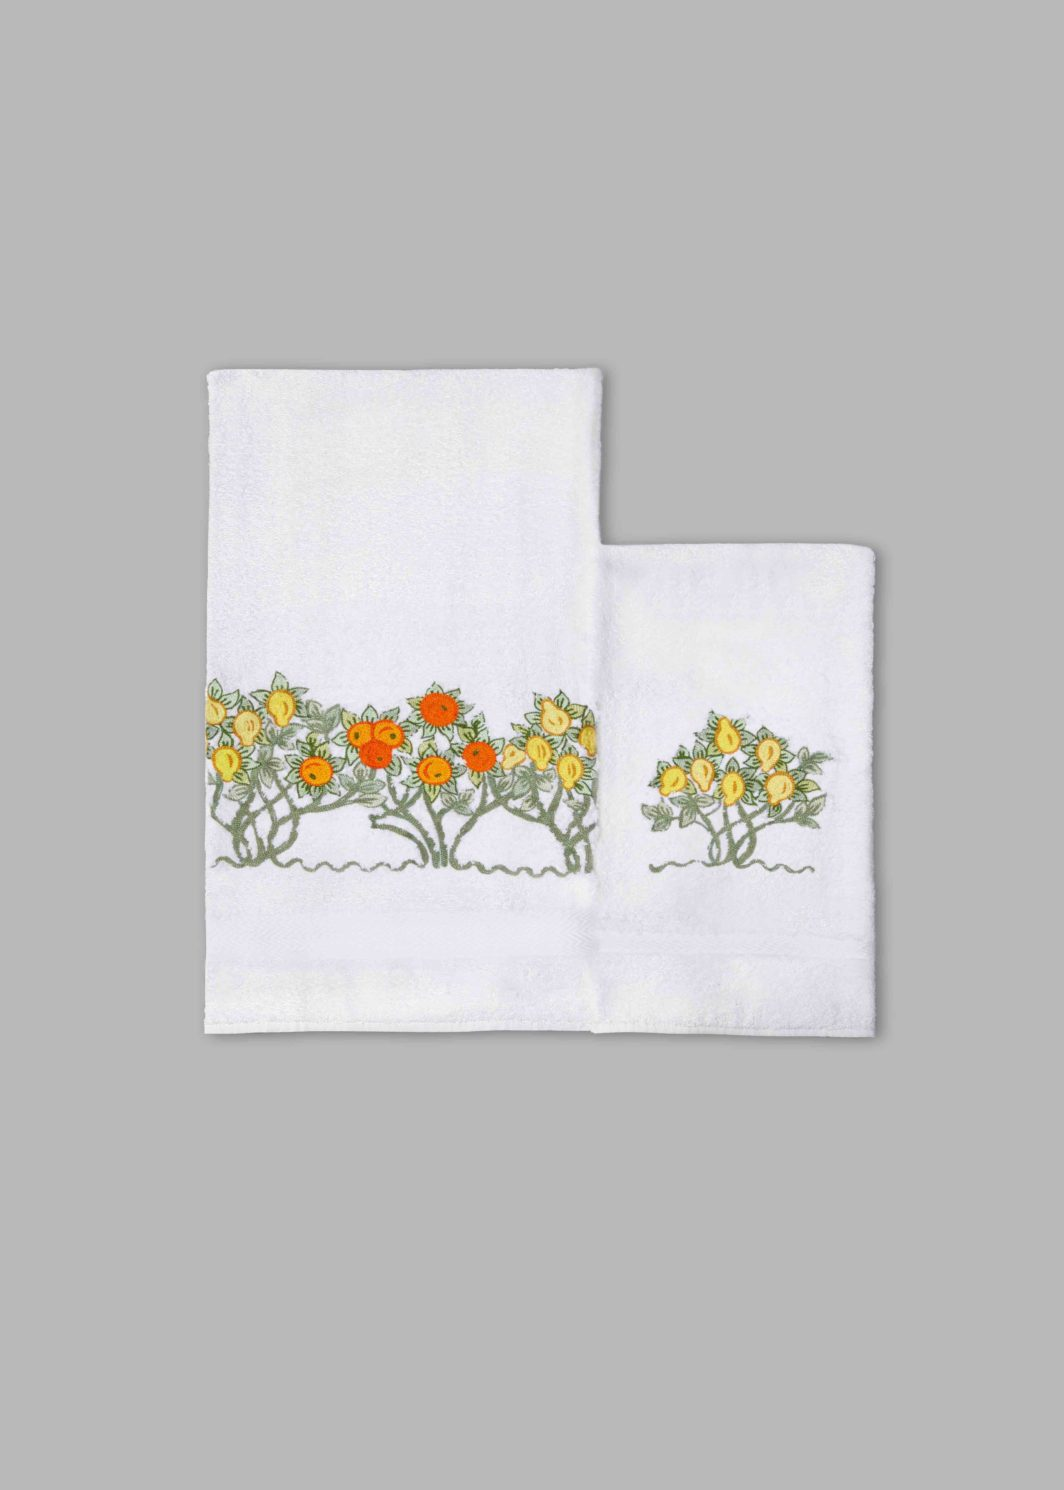 ORANGE & LEMON TREES BATH TOWELS SET - 2PCS